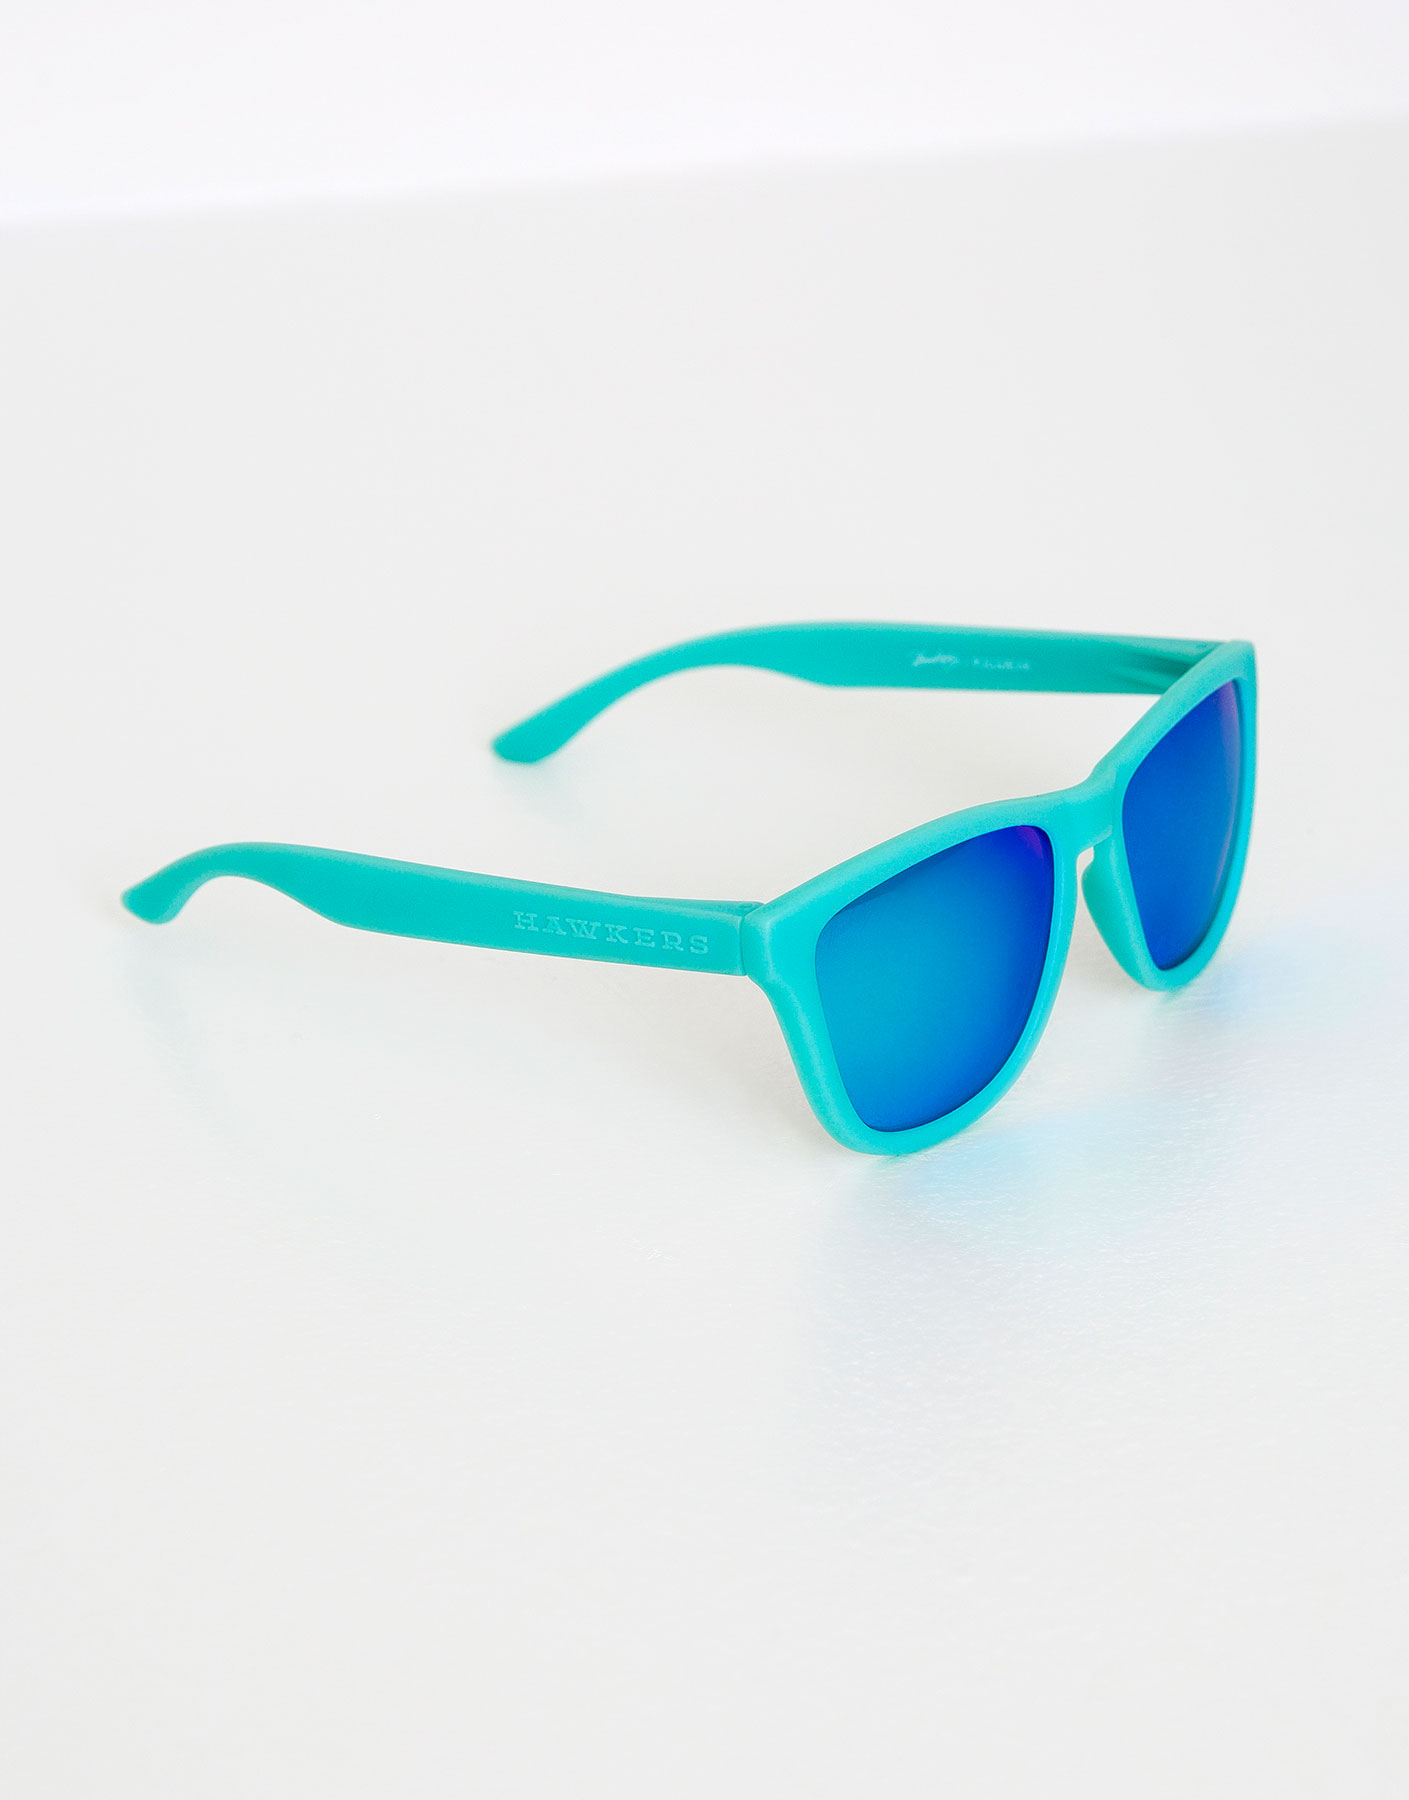 Ulleres de sol hawkers turquoise clear blue one